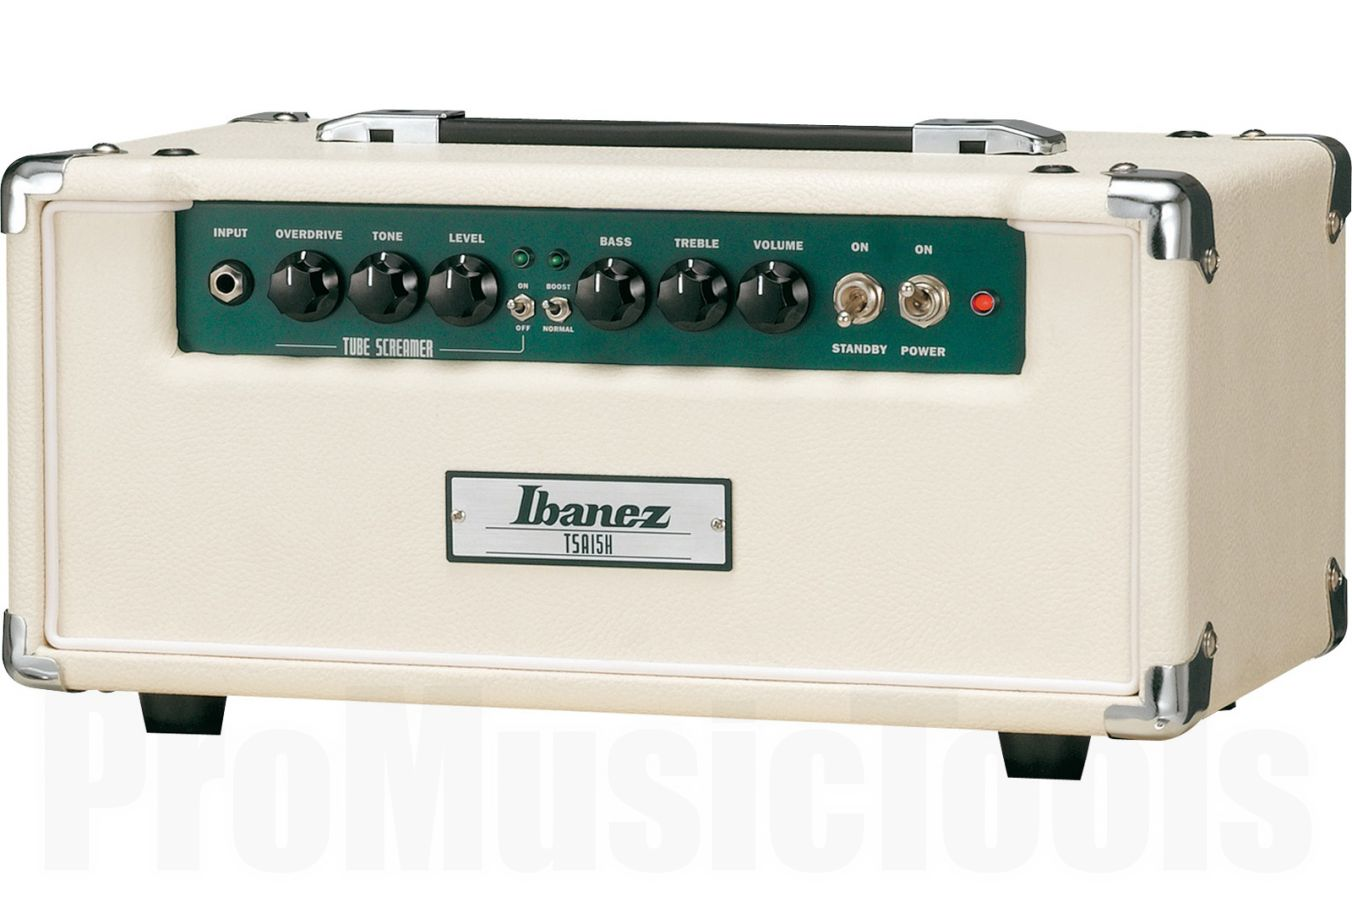 Ibanez TSA15H Tube Screamer Head